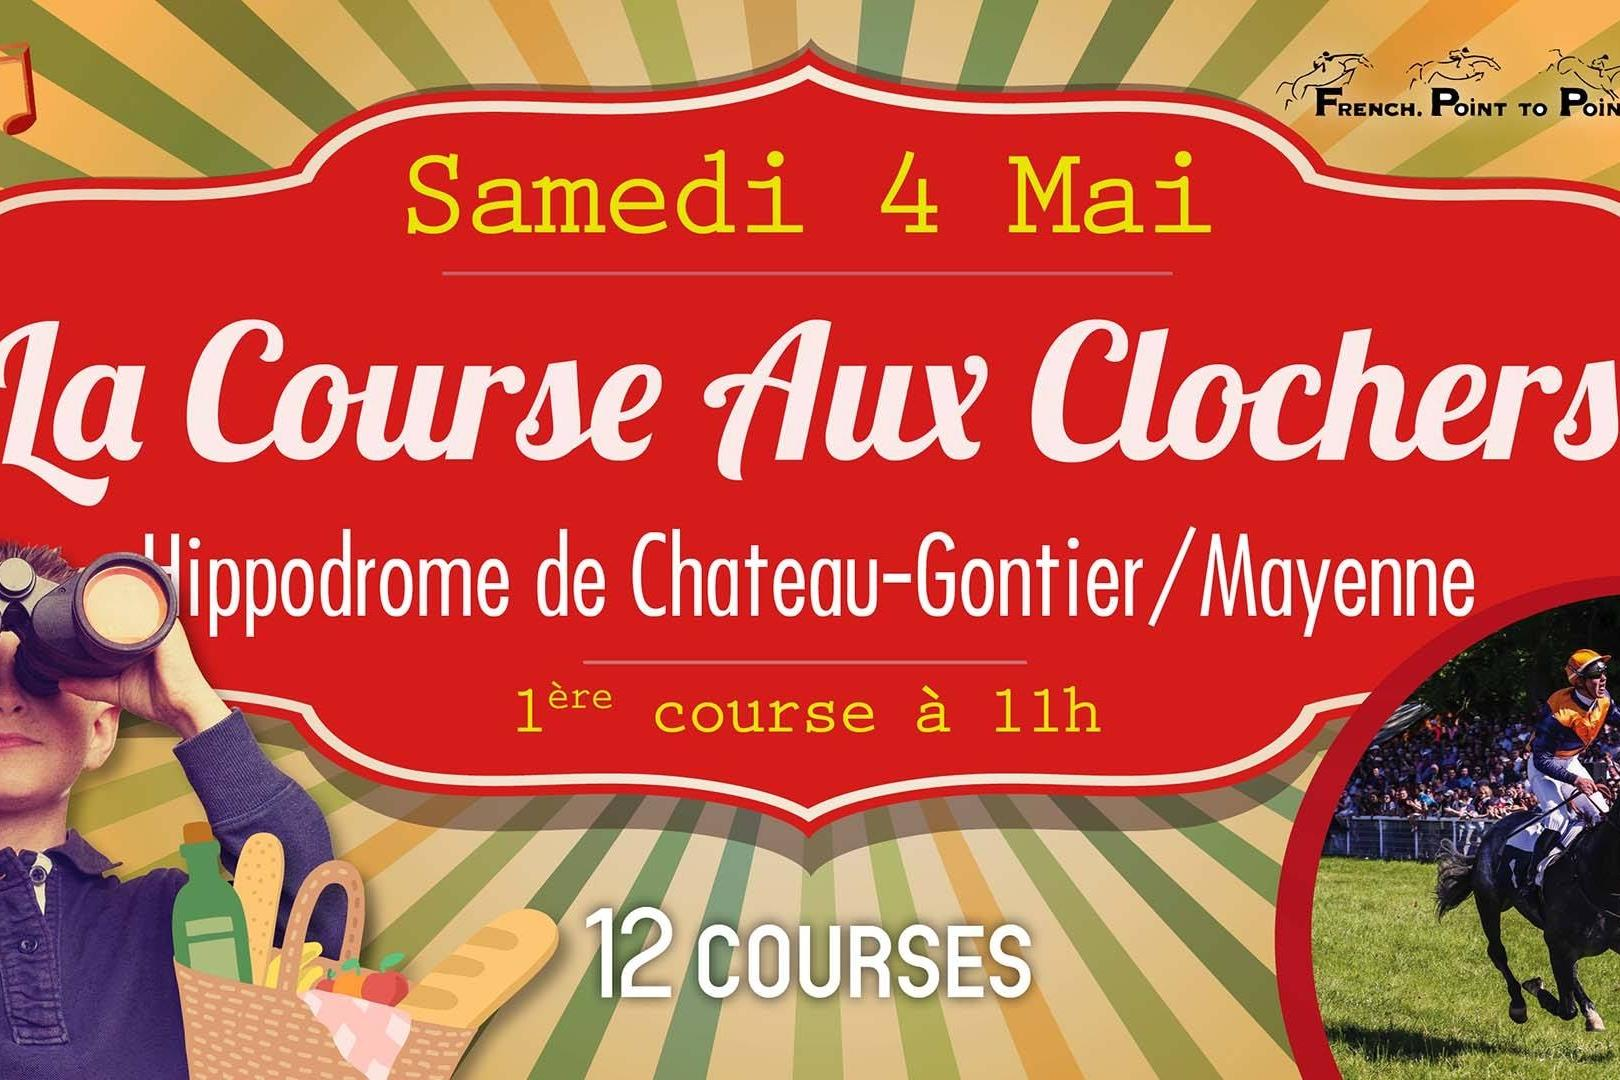 LE FRENCH POINT TO POINT À CHATEAU-GONTIER LE SAMEDI 4 MAI 2019 !